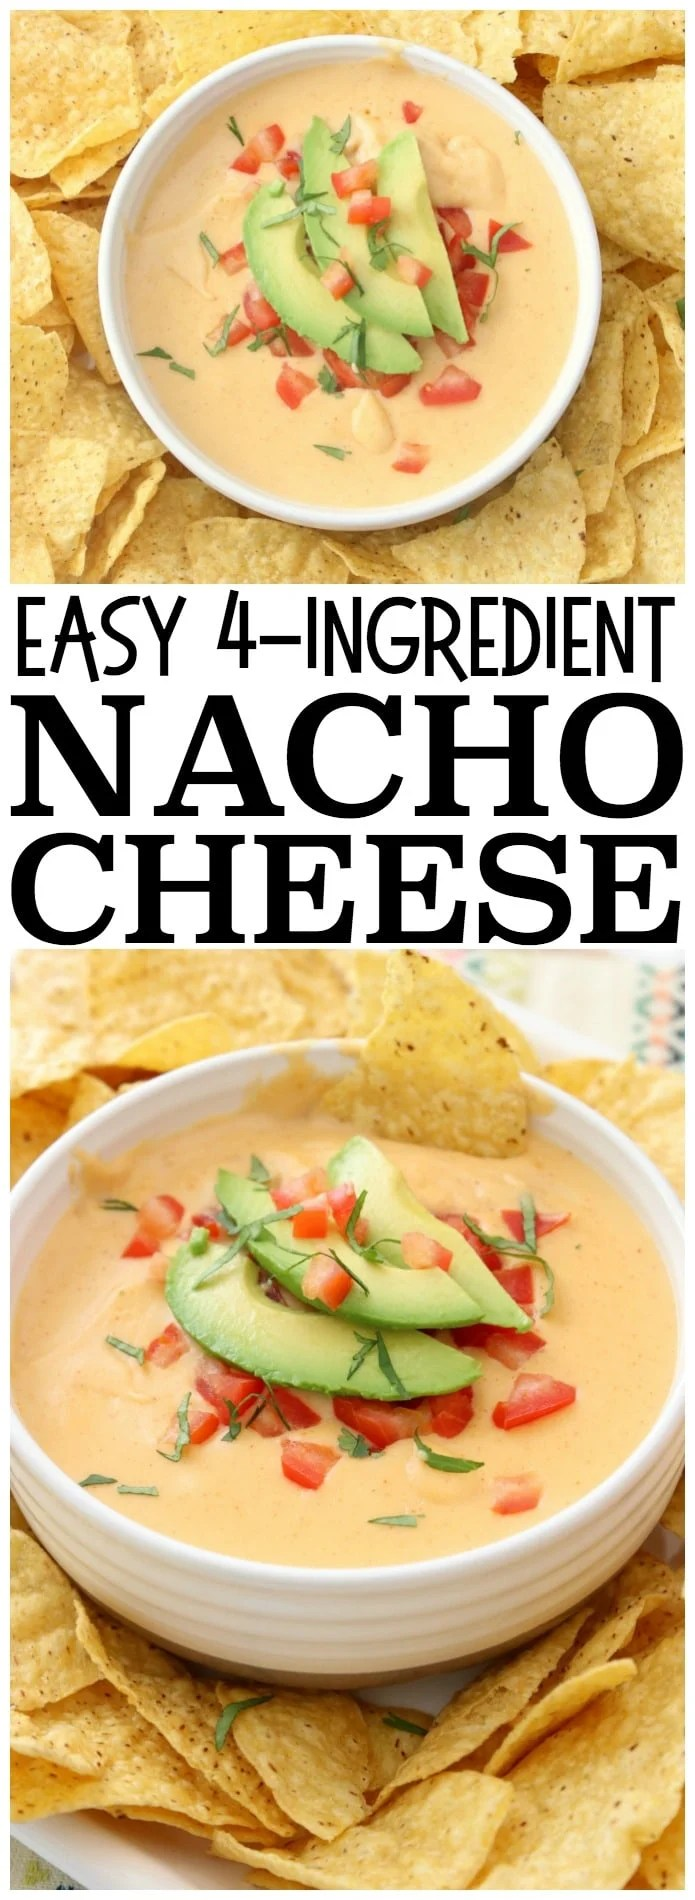 Easy Nacho Cheese sauce recipe with only 4 ingredients and is made in minutes! Smooth, creamy with great nacho cheese flavor, this recipe is perfect for parties, busy weeknight dinners and game day food! Best #Nacho #Cheese #recipe ever from Butter With A Side of Bread #appetizer #food #nachos #homemade